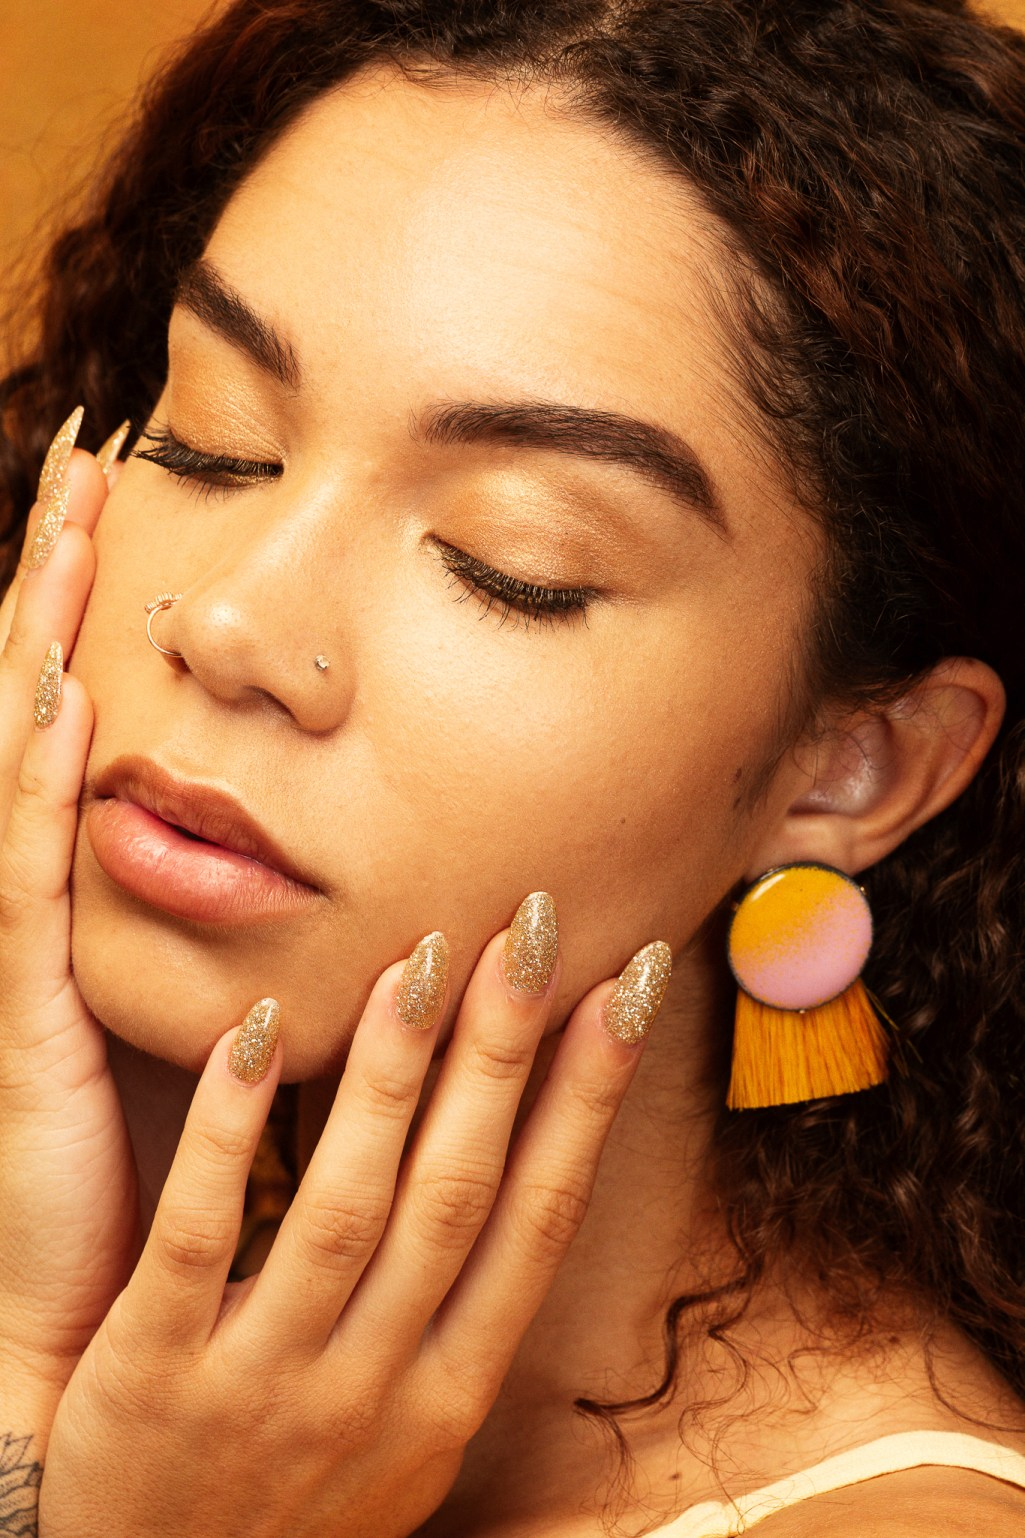 Jewelry photography by Oakland photographers Ella Sophie, Model with gold nails and modern earrings